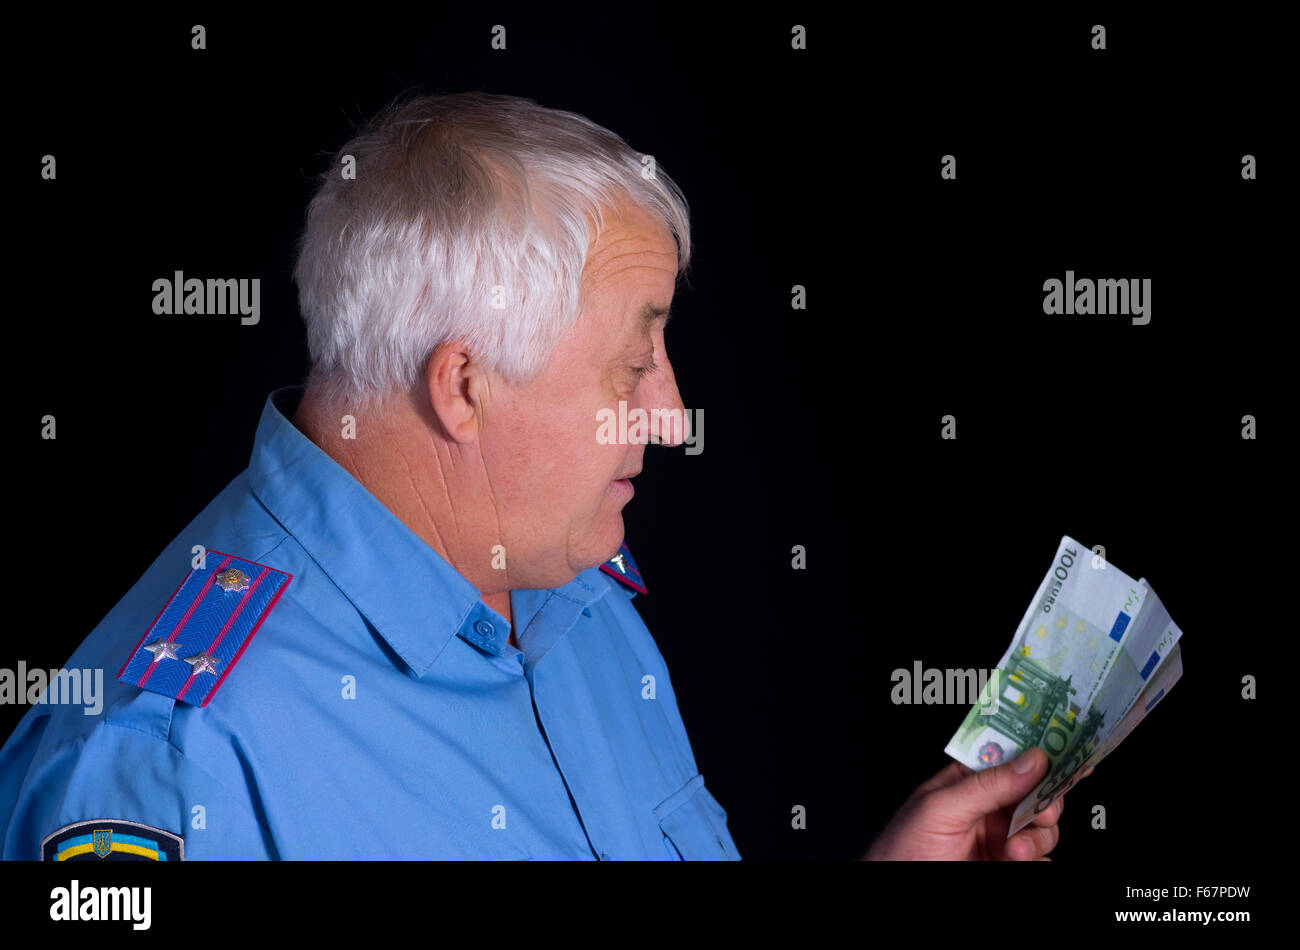 Portrait of police man looking on euro banknotes with interest - Stock Image